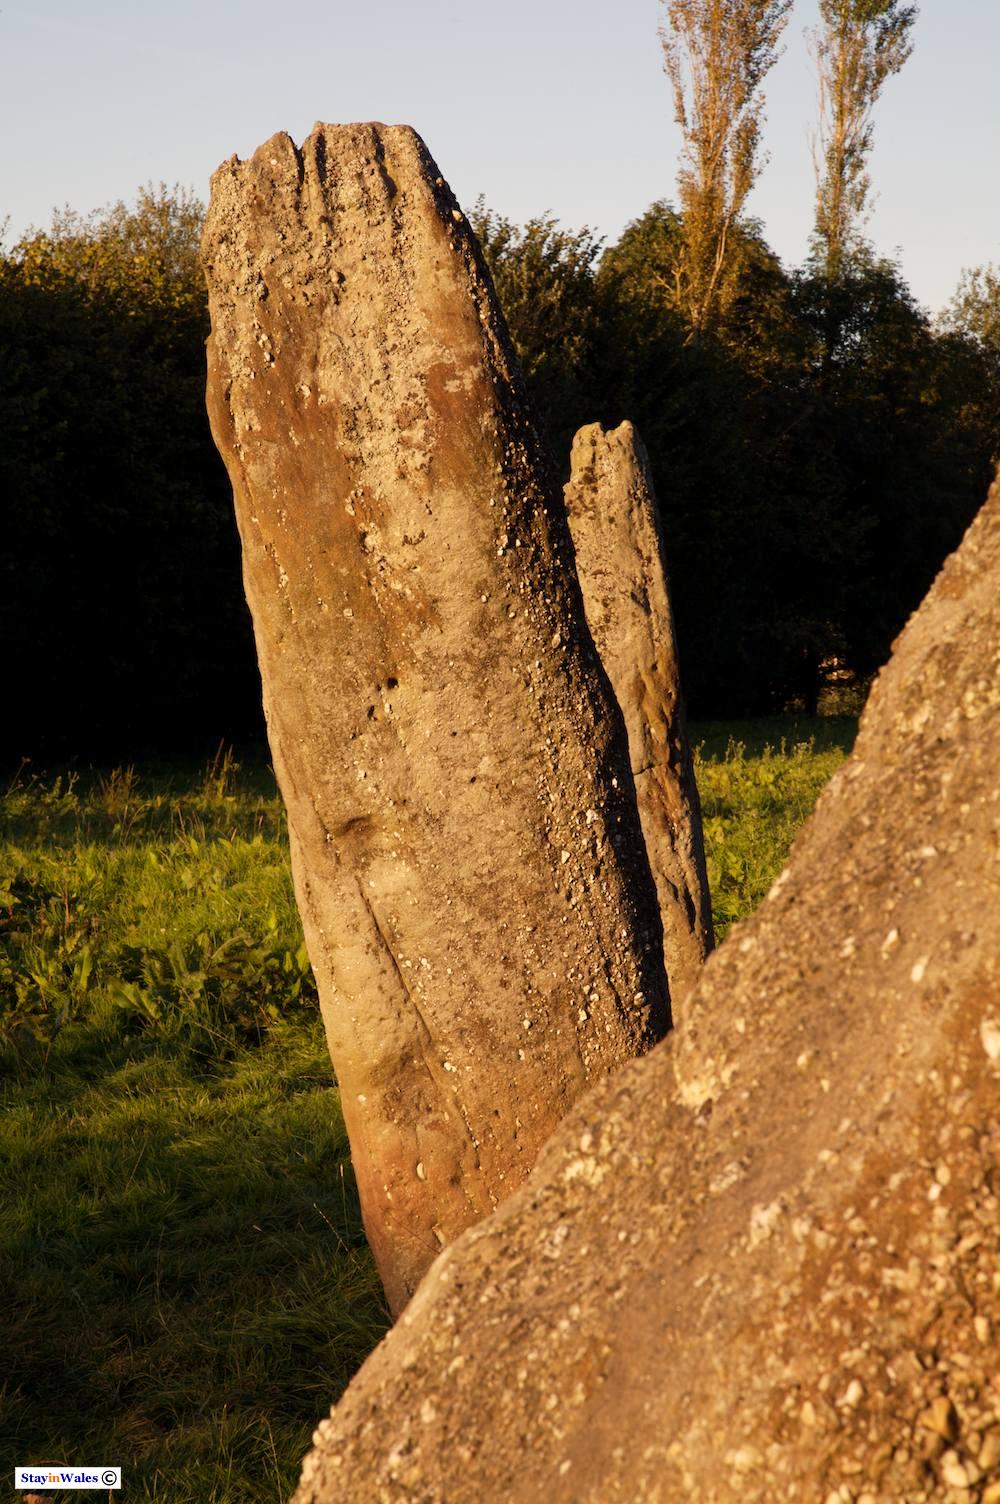 Harold's Stones at Trellech, Monmouthshire